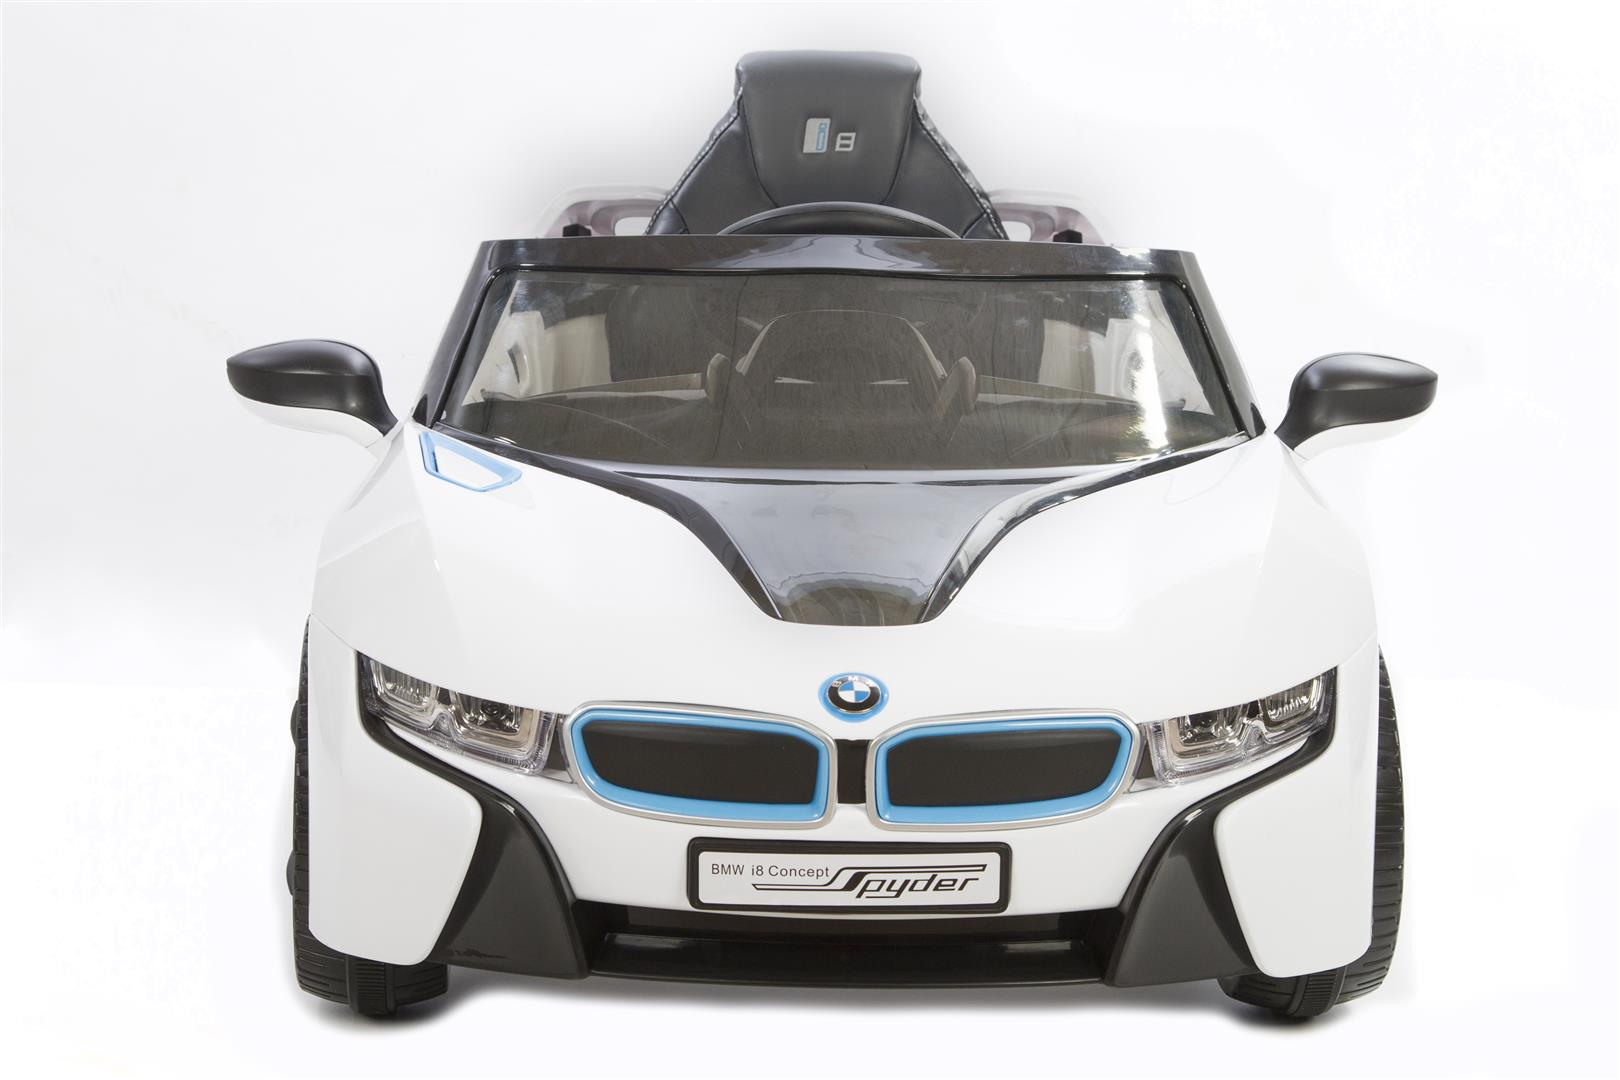 Ride Ons BMW I8 Concept Elbil - Vit